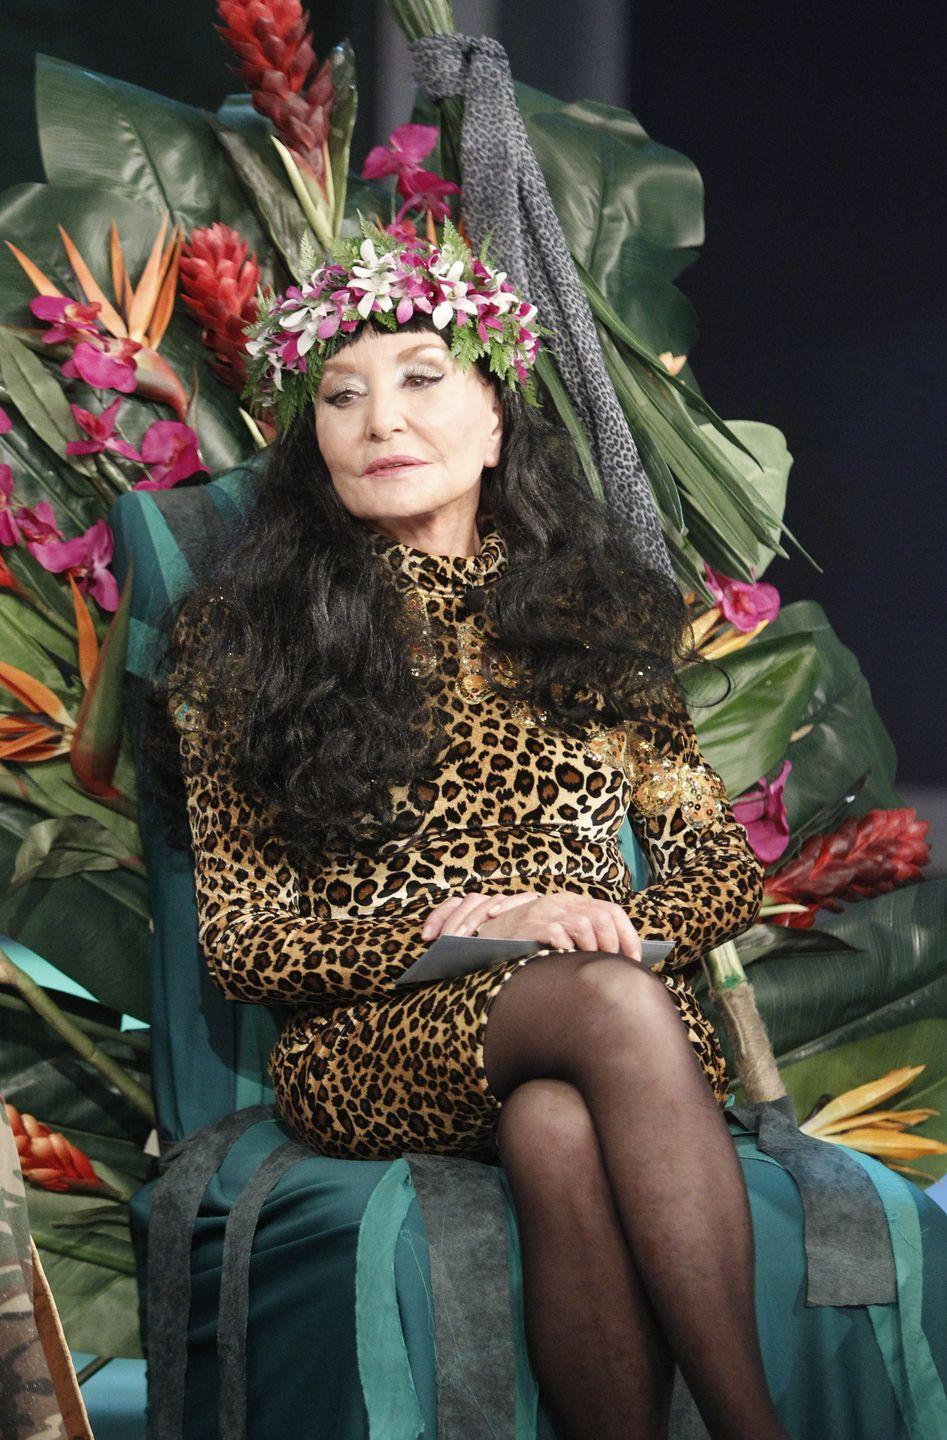 <p>The media pioneer roared in leopard and her flower crown on a throne as pop royalty Katy Perry.</p>